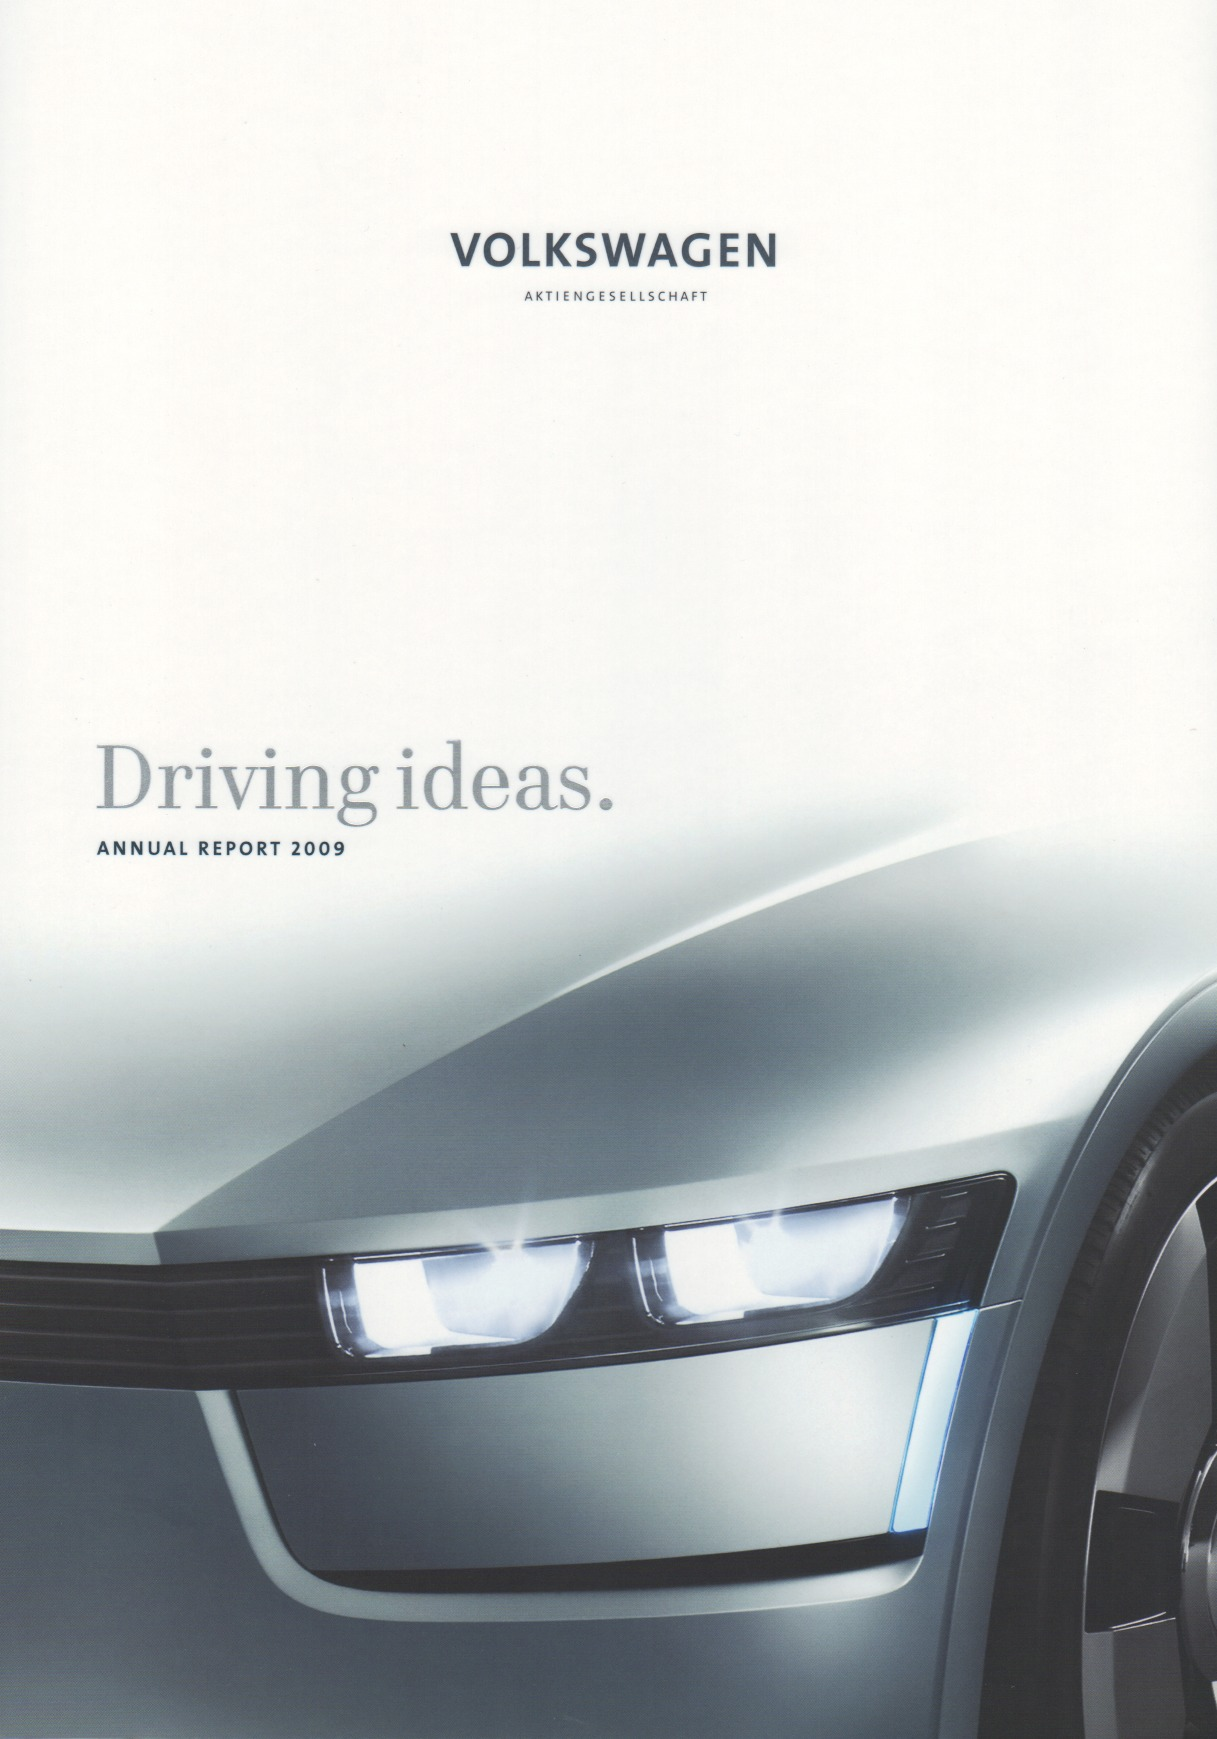 lacp  vision awards annual report competition volkswagen ag st kommunikation gmbh